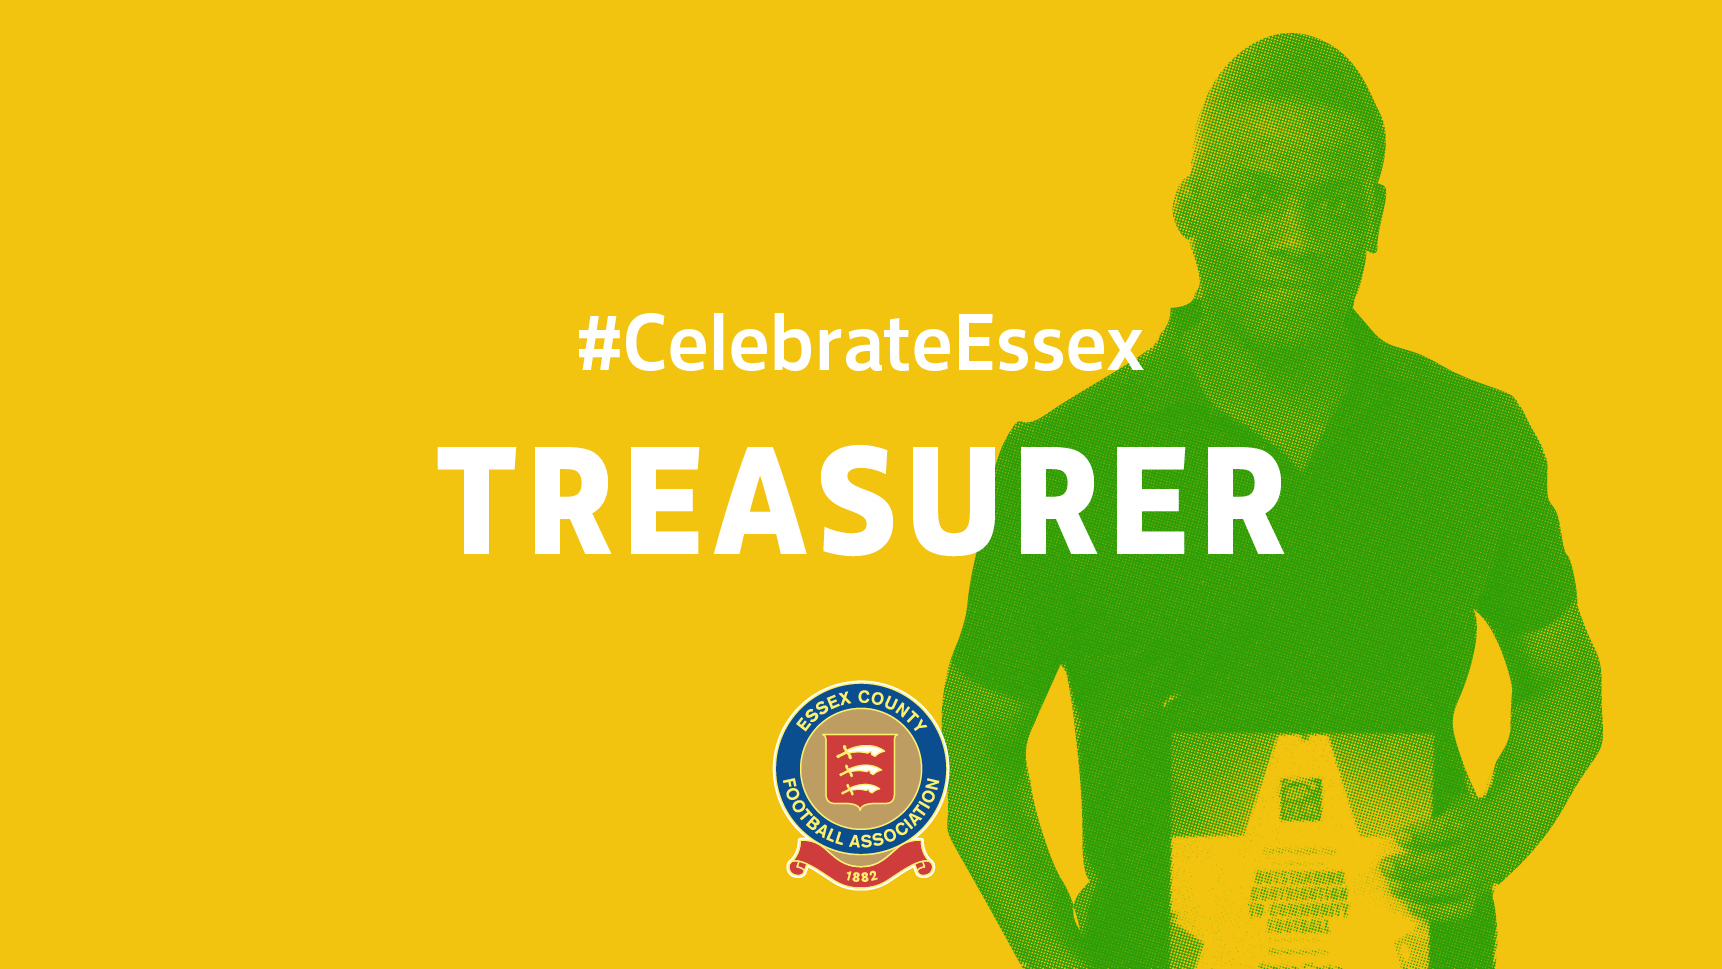 #CelebrateEssex Treasurer